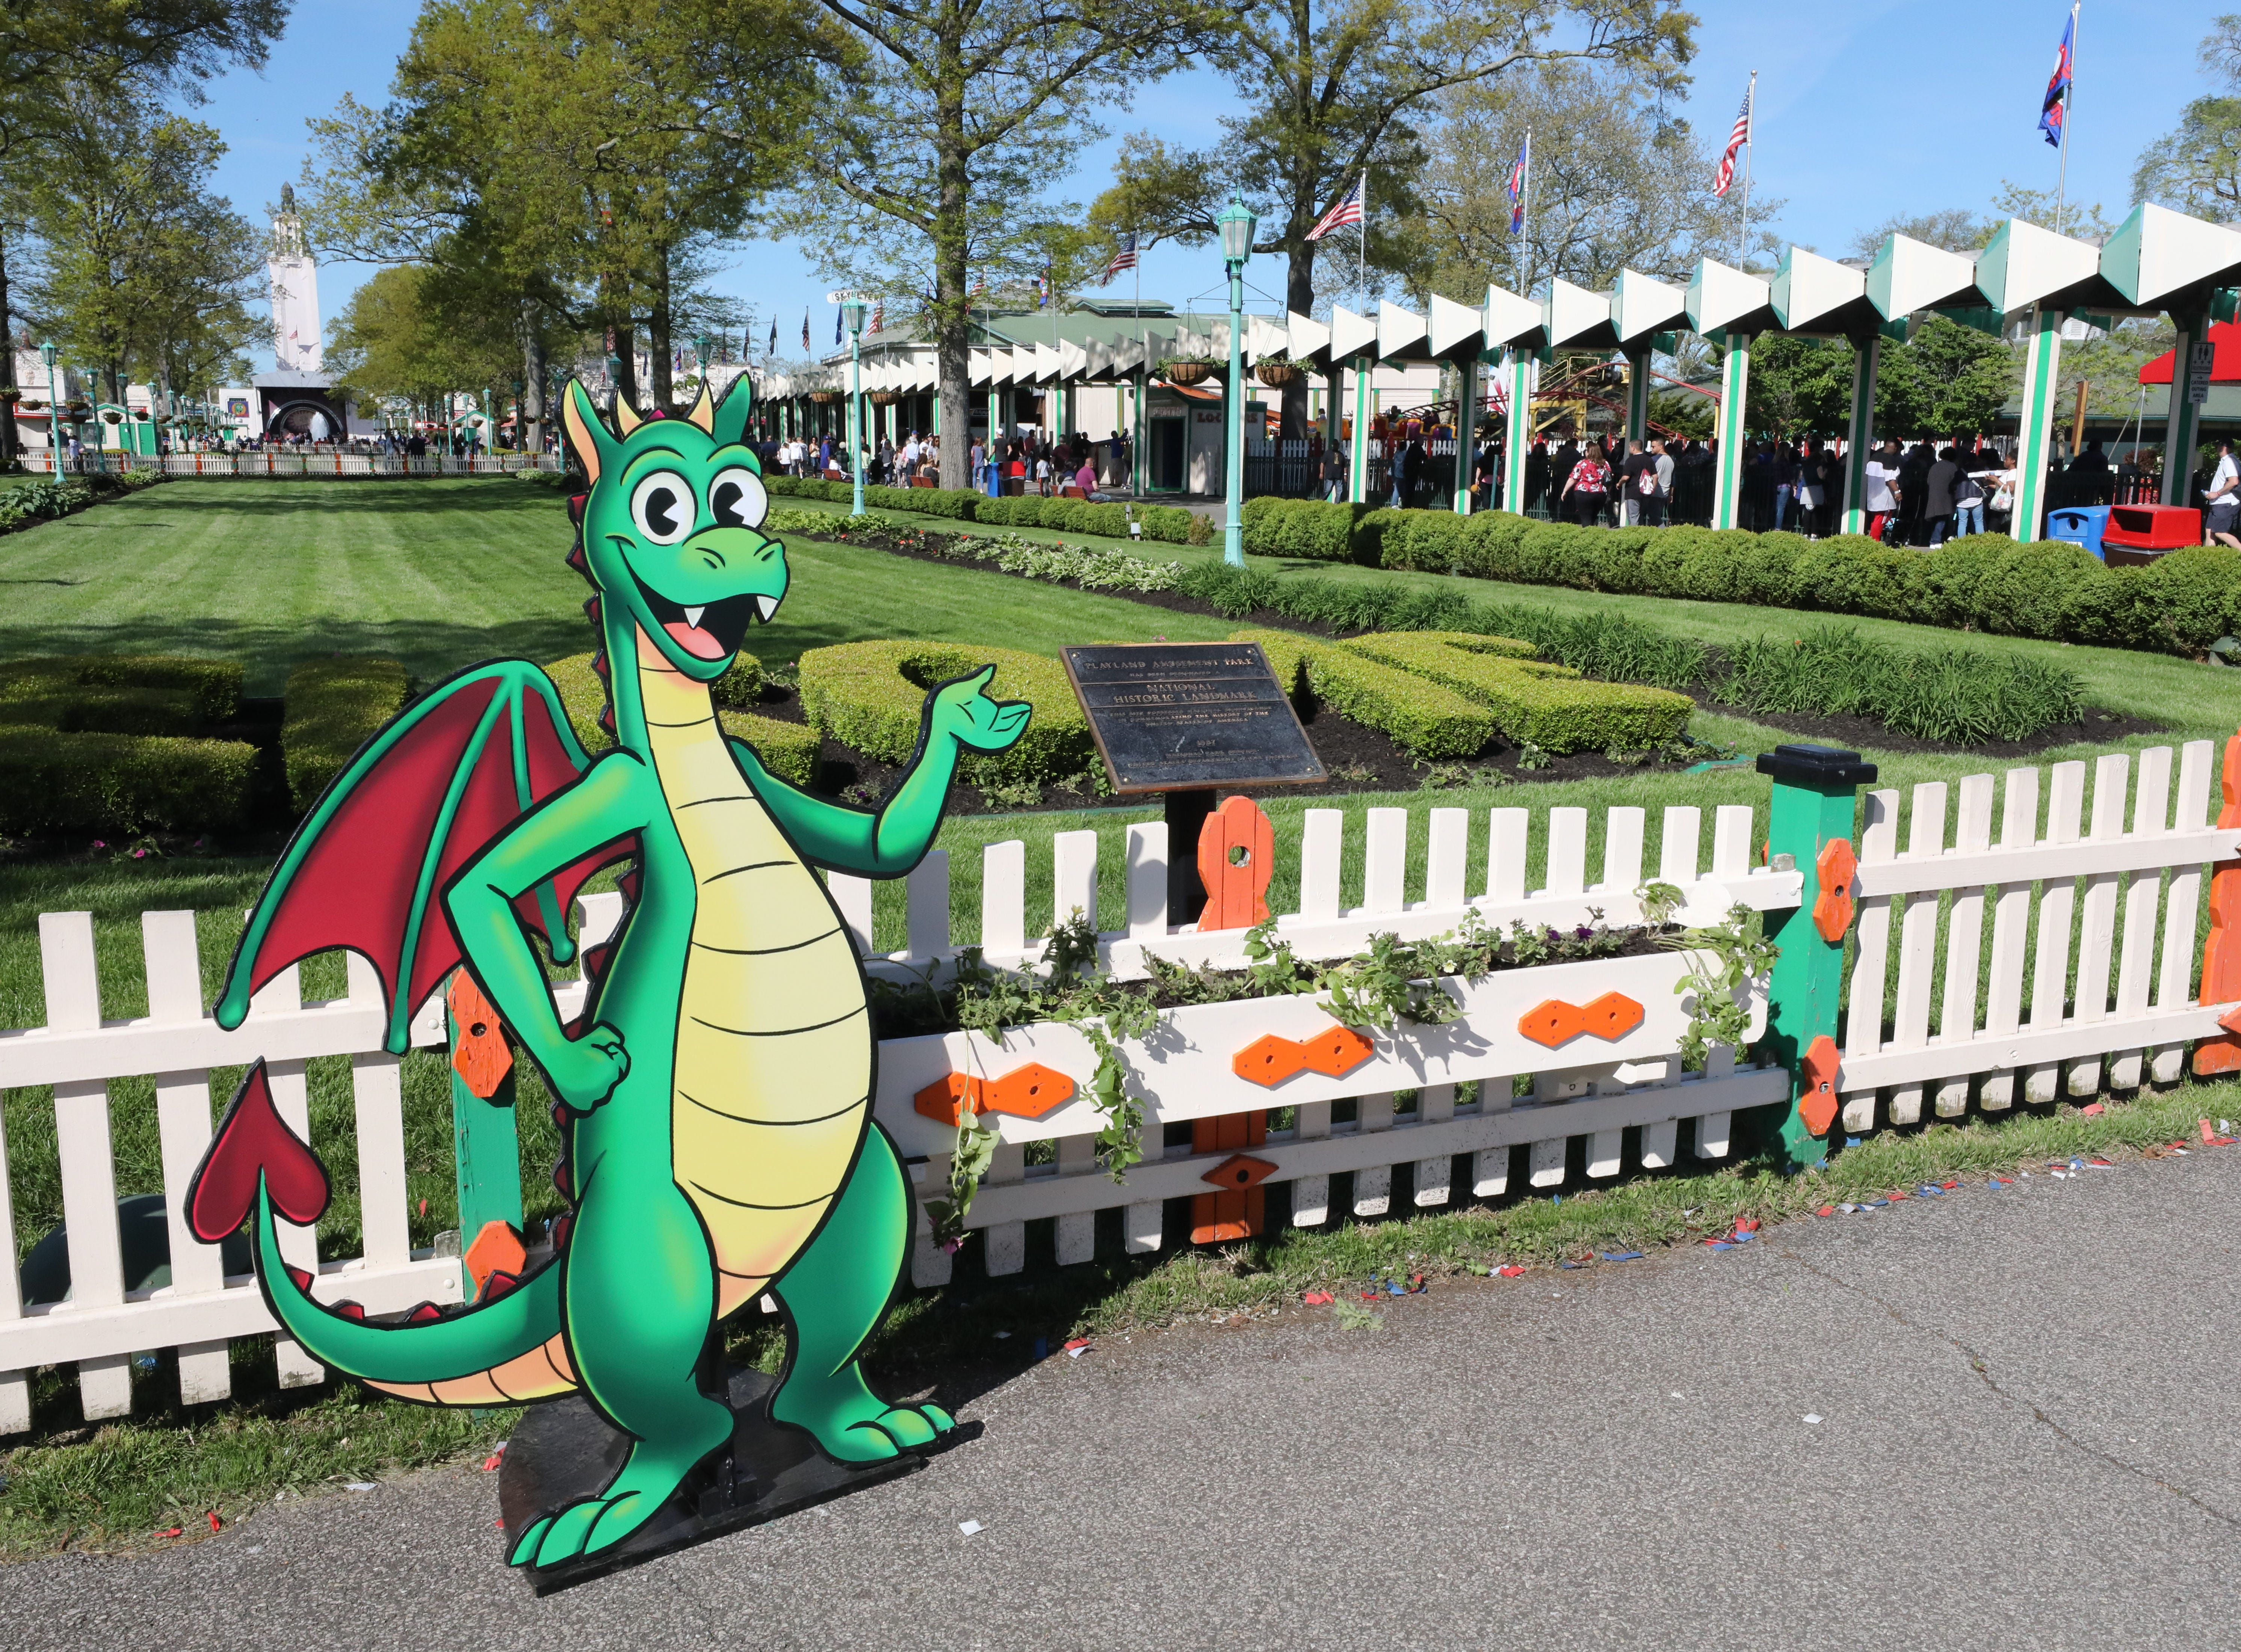 The Hey Coaster dragon mascot greets guests during opening day at Playland in Rye, May 11, 2019.